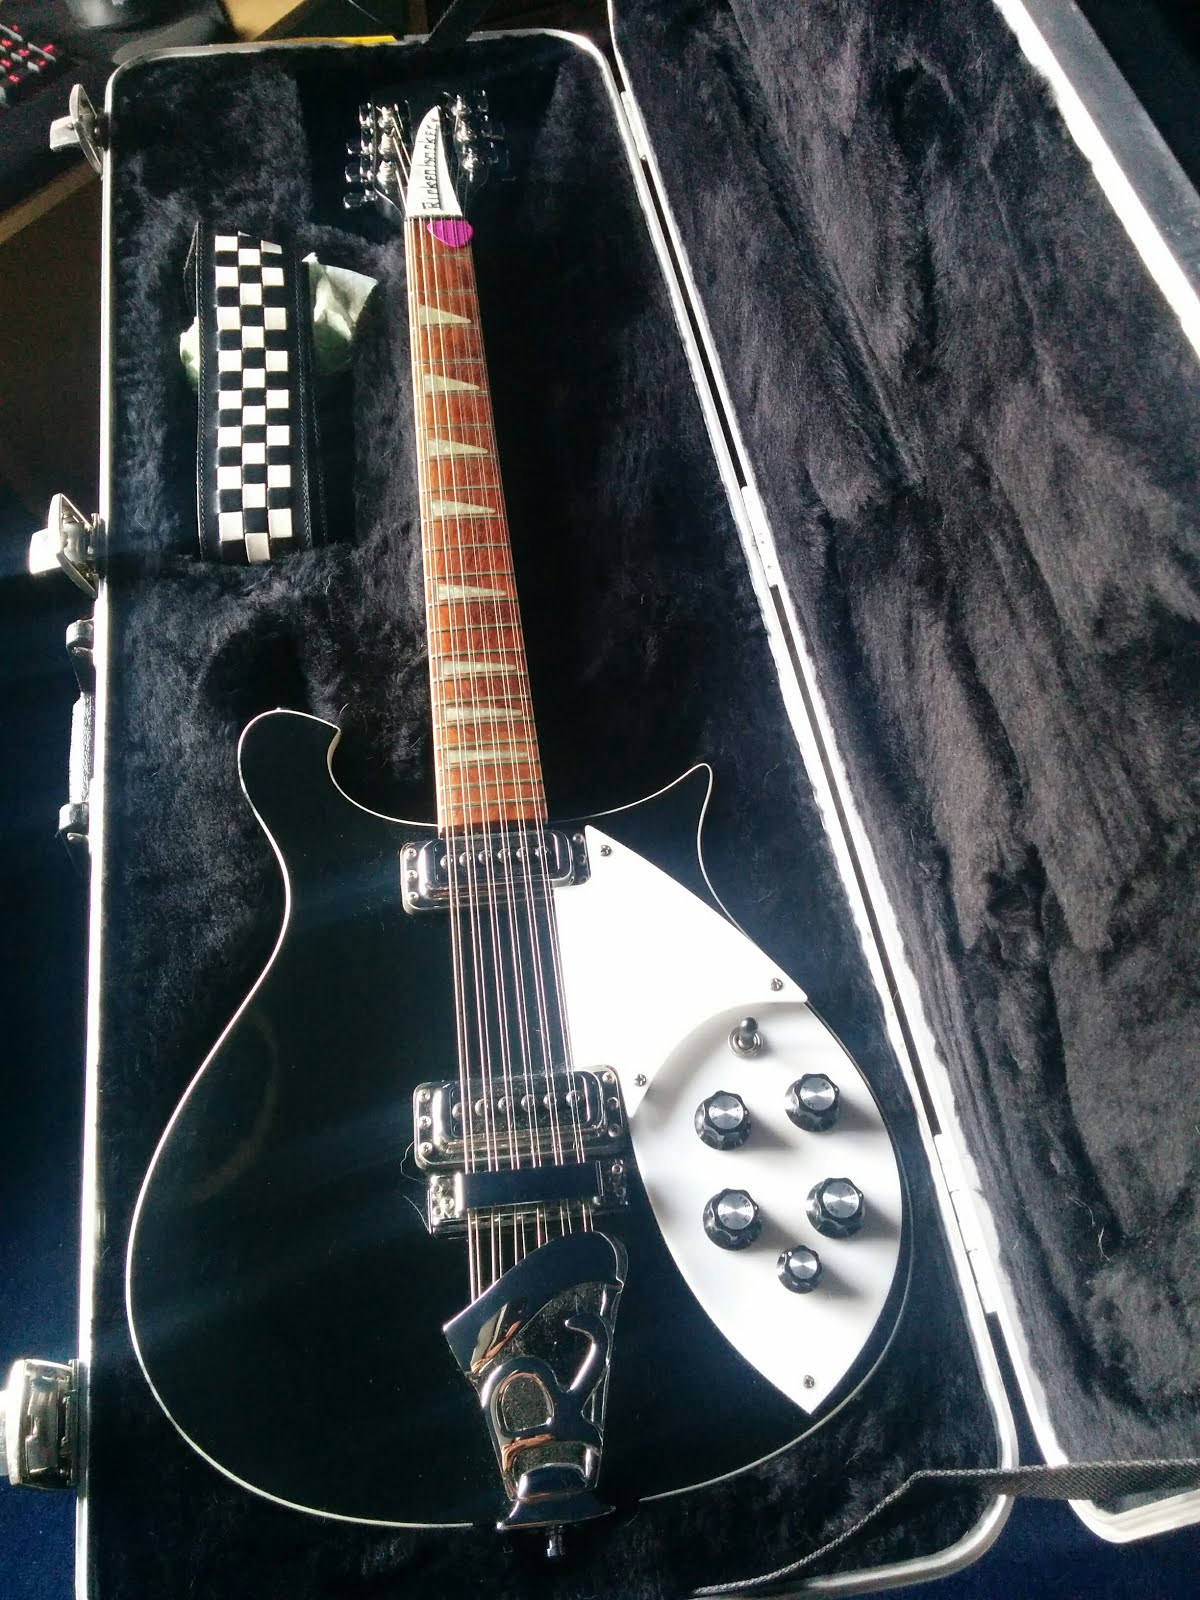 Rickenbacker 620/12 12 string guitar.